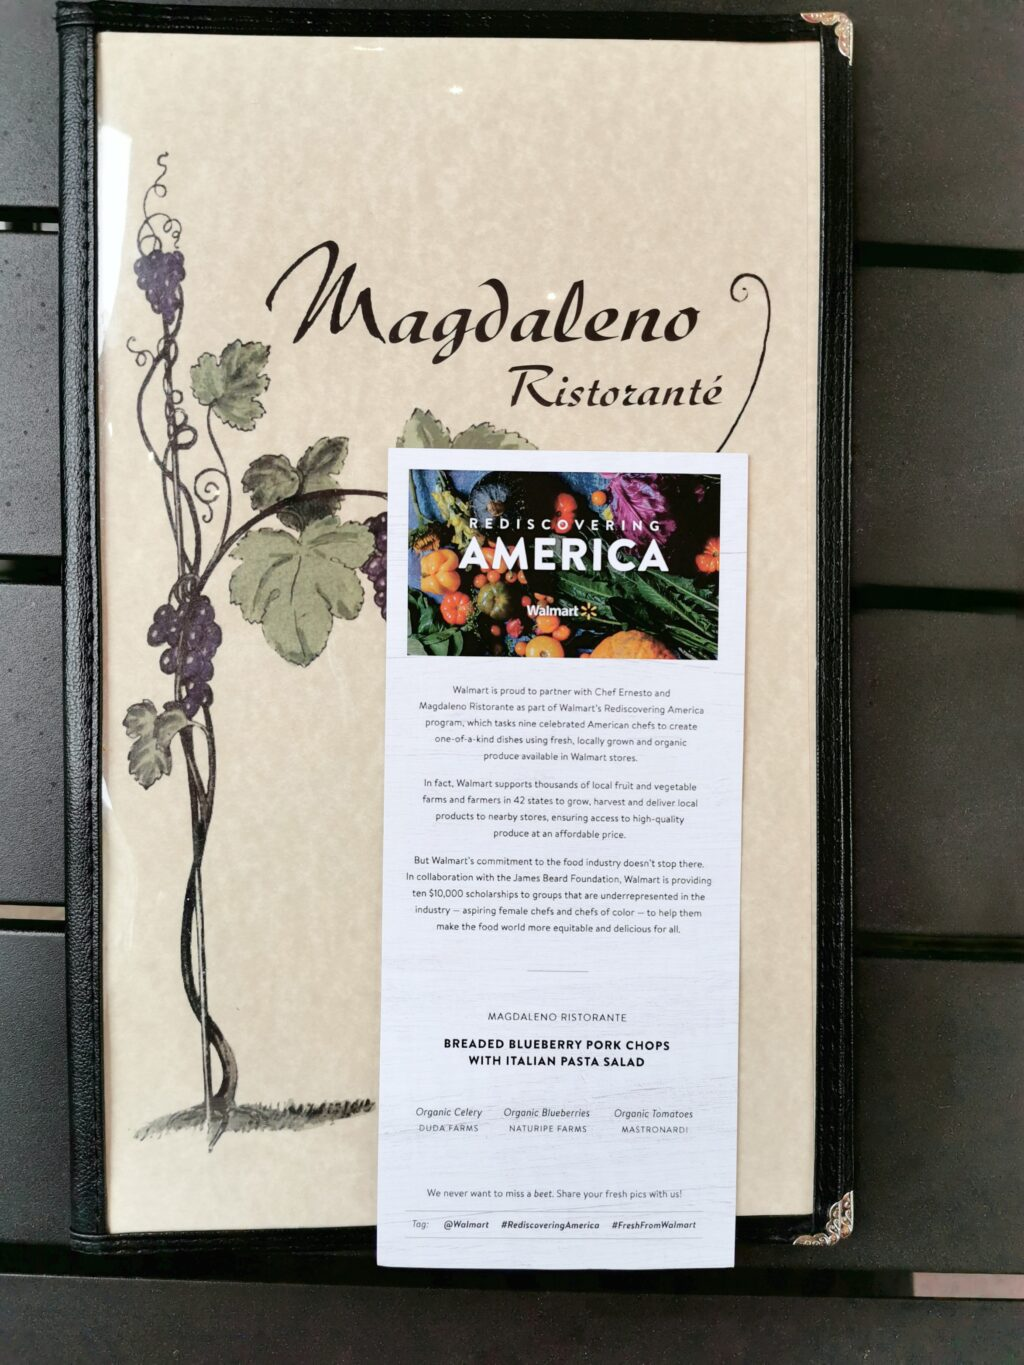 Magdaleno Ristorante menu with 'Rediscovering America' flyer.